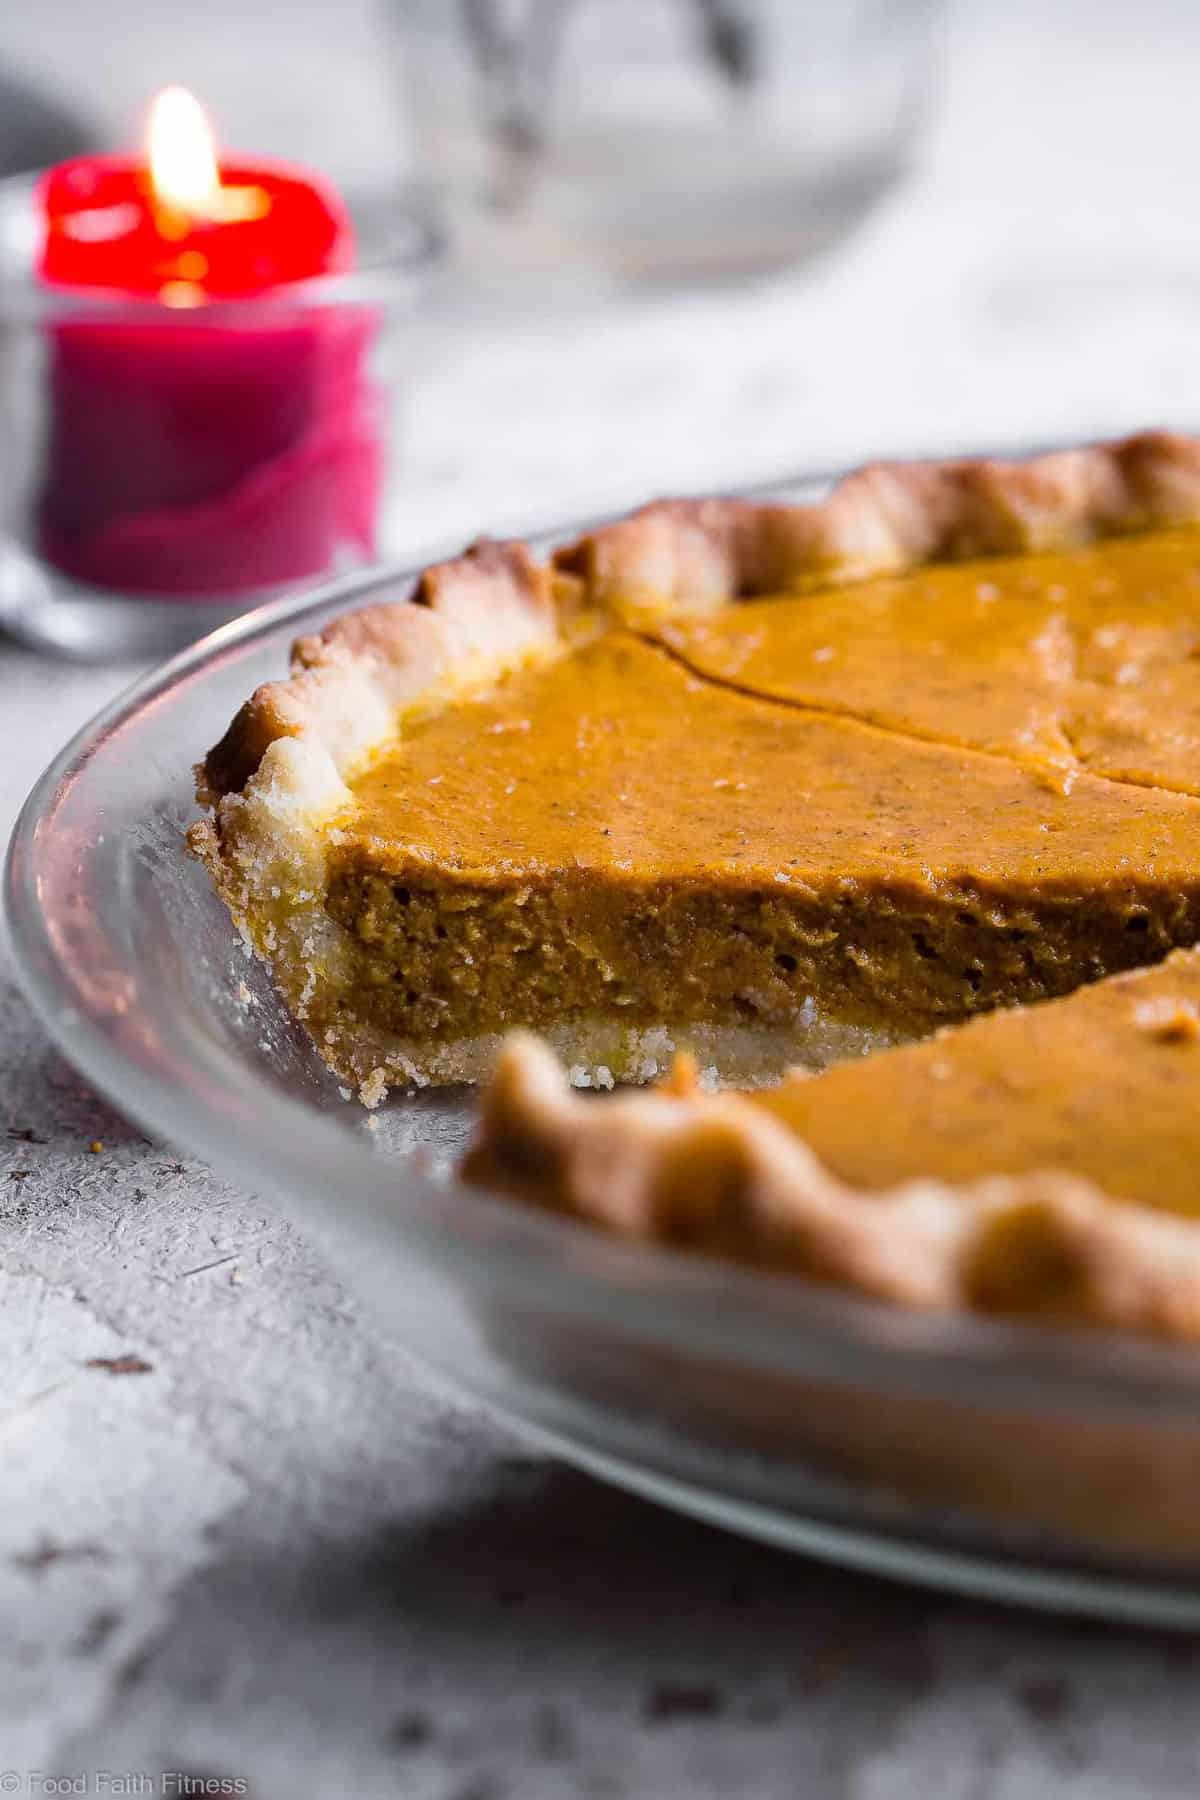 The BEST Paleo Low Carb Sugar Free Pumpkin Pie - This paleo friendly, sugar free pumpkin pie is SO delicious, you will never know it's dairy and gluten free and only 200 calories a slice! Everyone will want this recipe! | #Foodfaithfitness